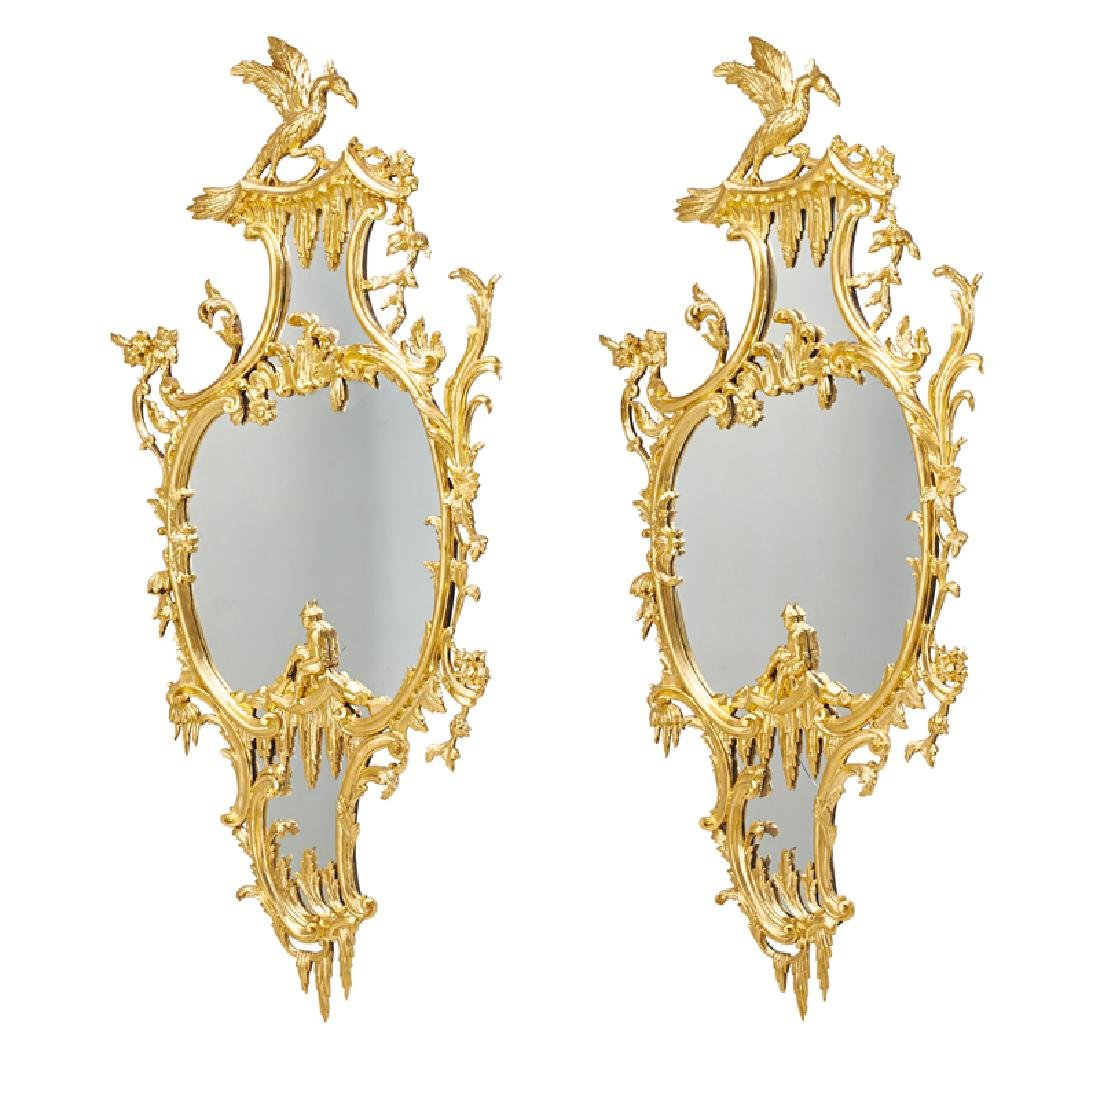 PAIR OF GEORGE II STYLE GILTWOOD MIRRORS